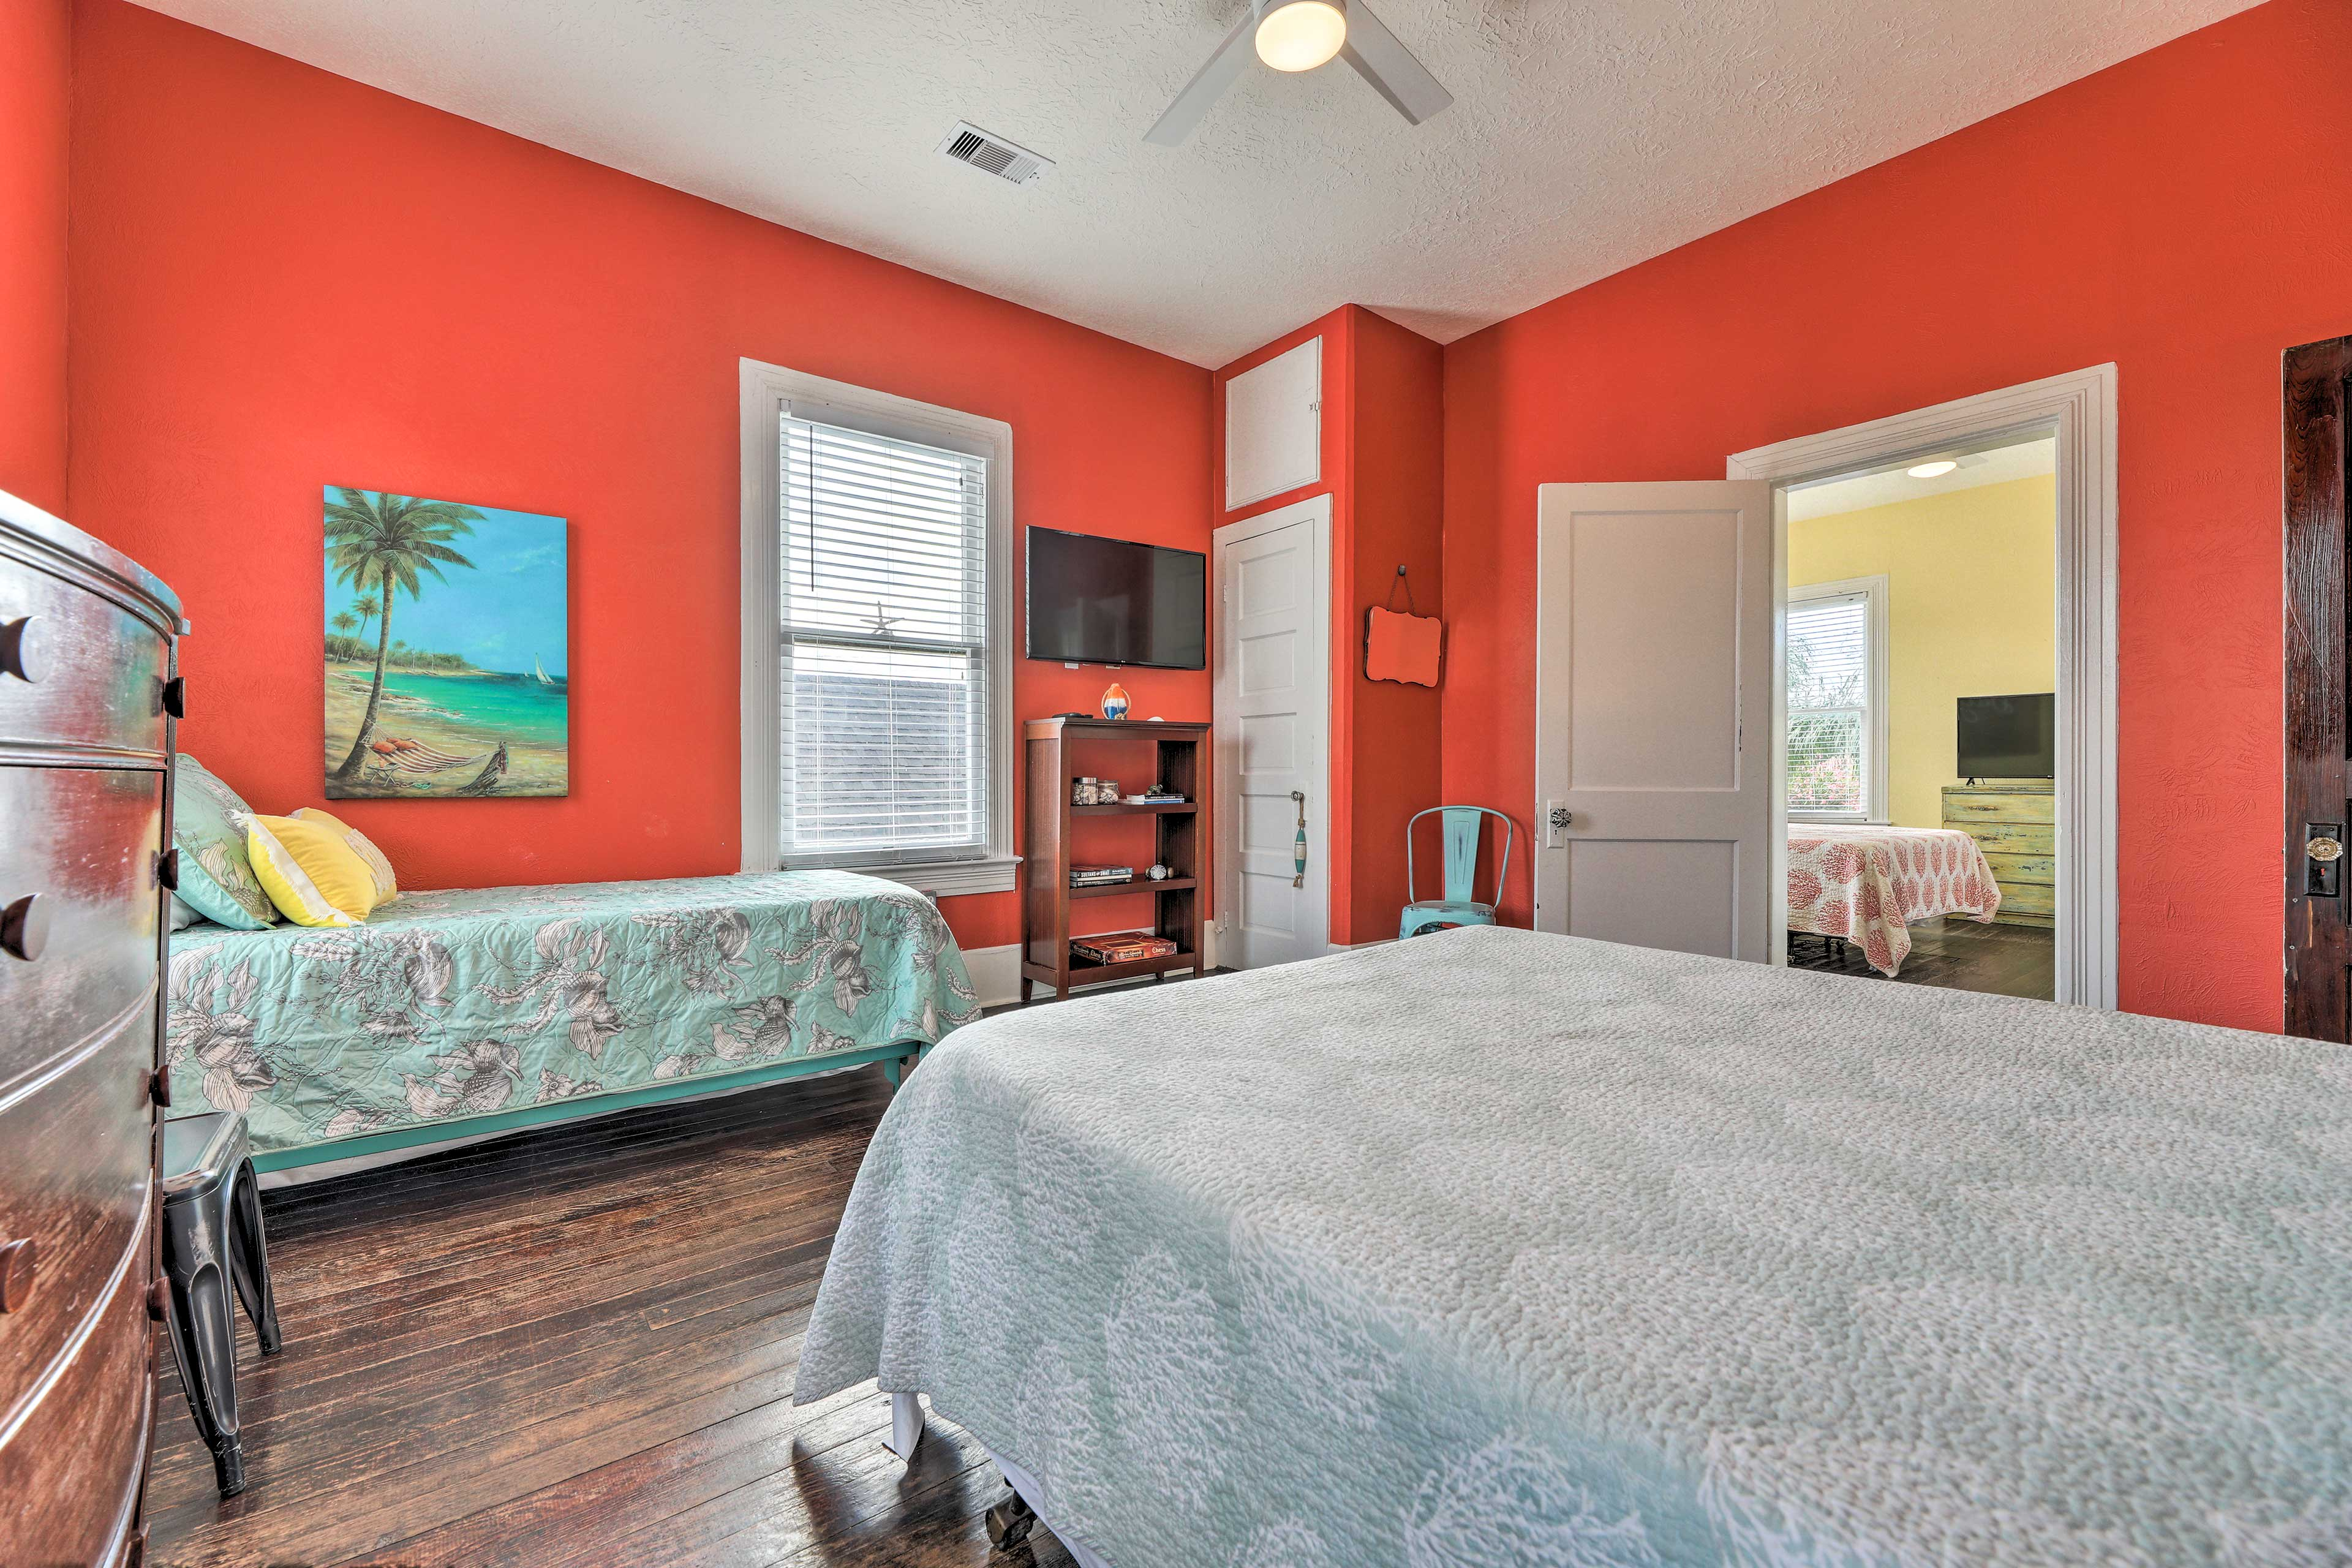 Rise and shine to plenty of natural sunlight in this bedroom.